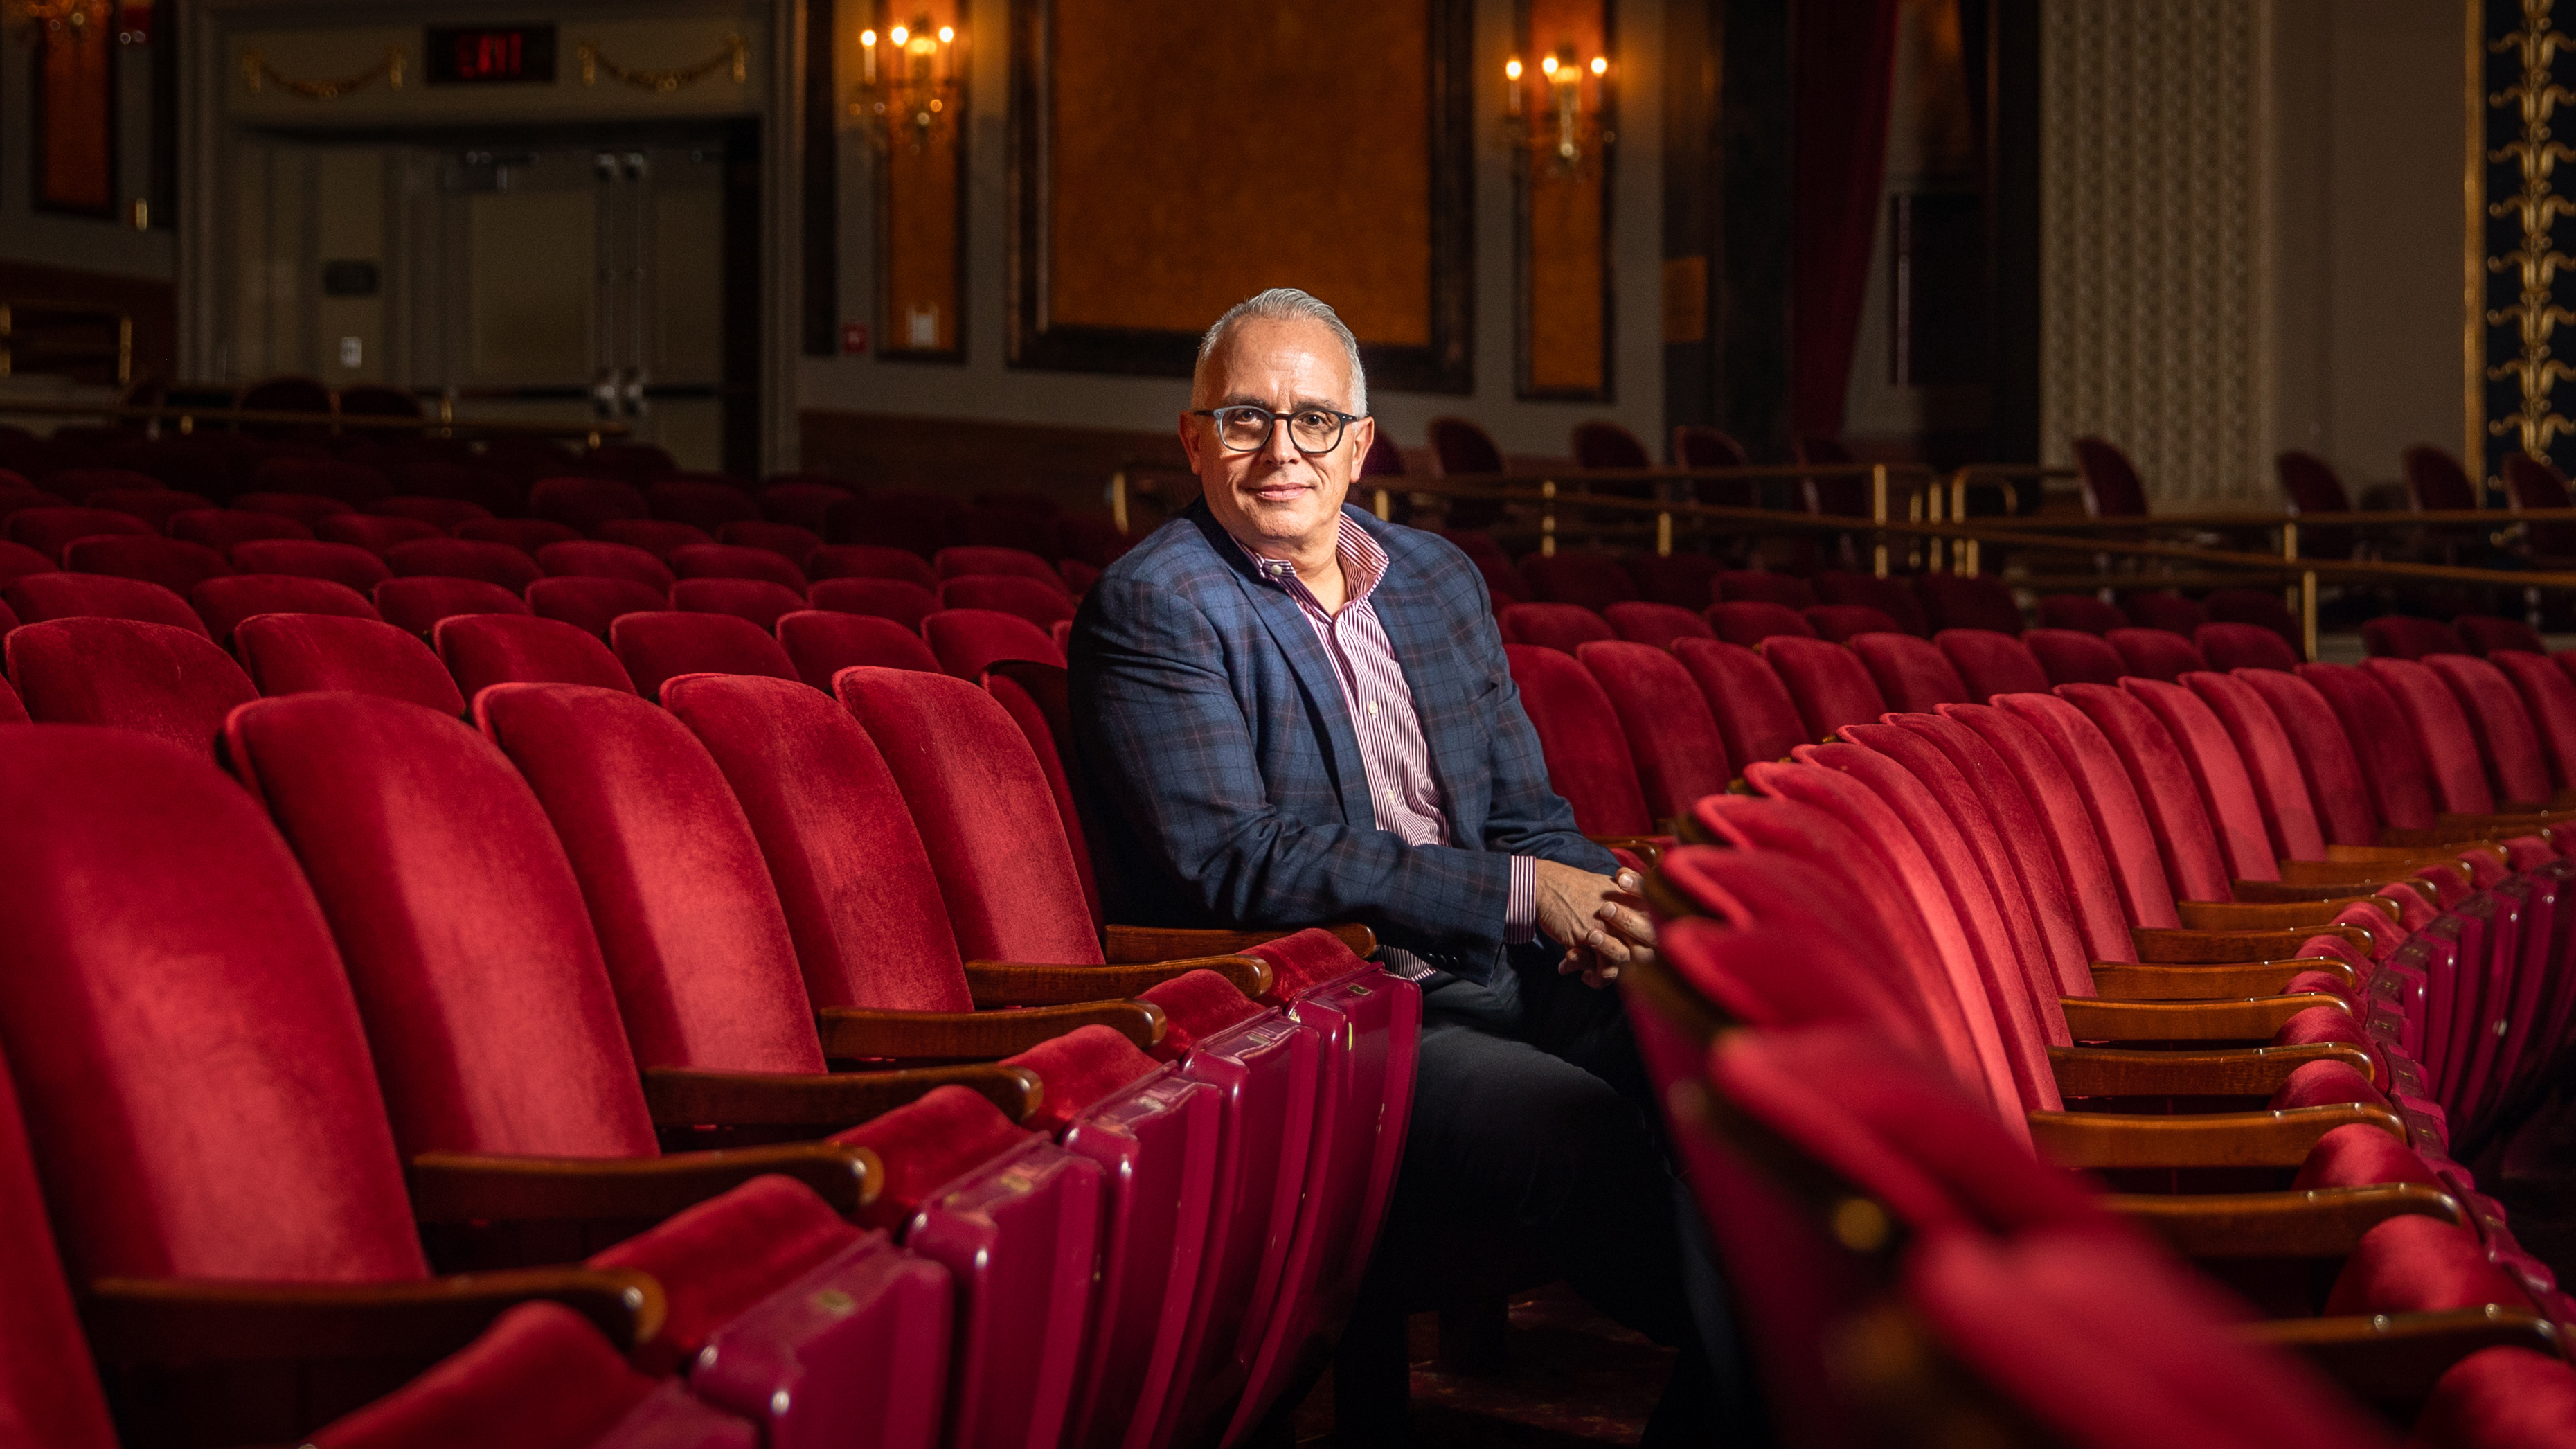 Frank Tavera sitting in the red seats at The Palace Theater is Waterbury CT